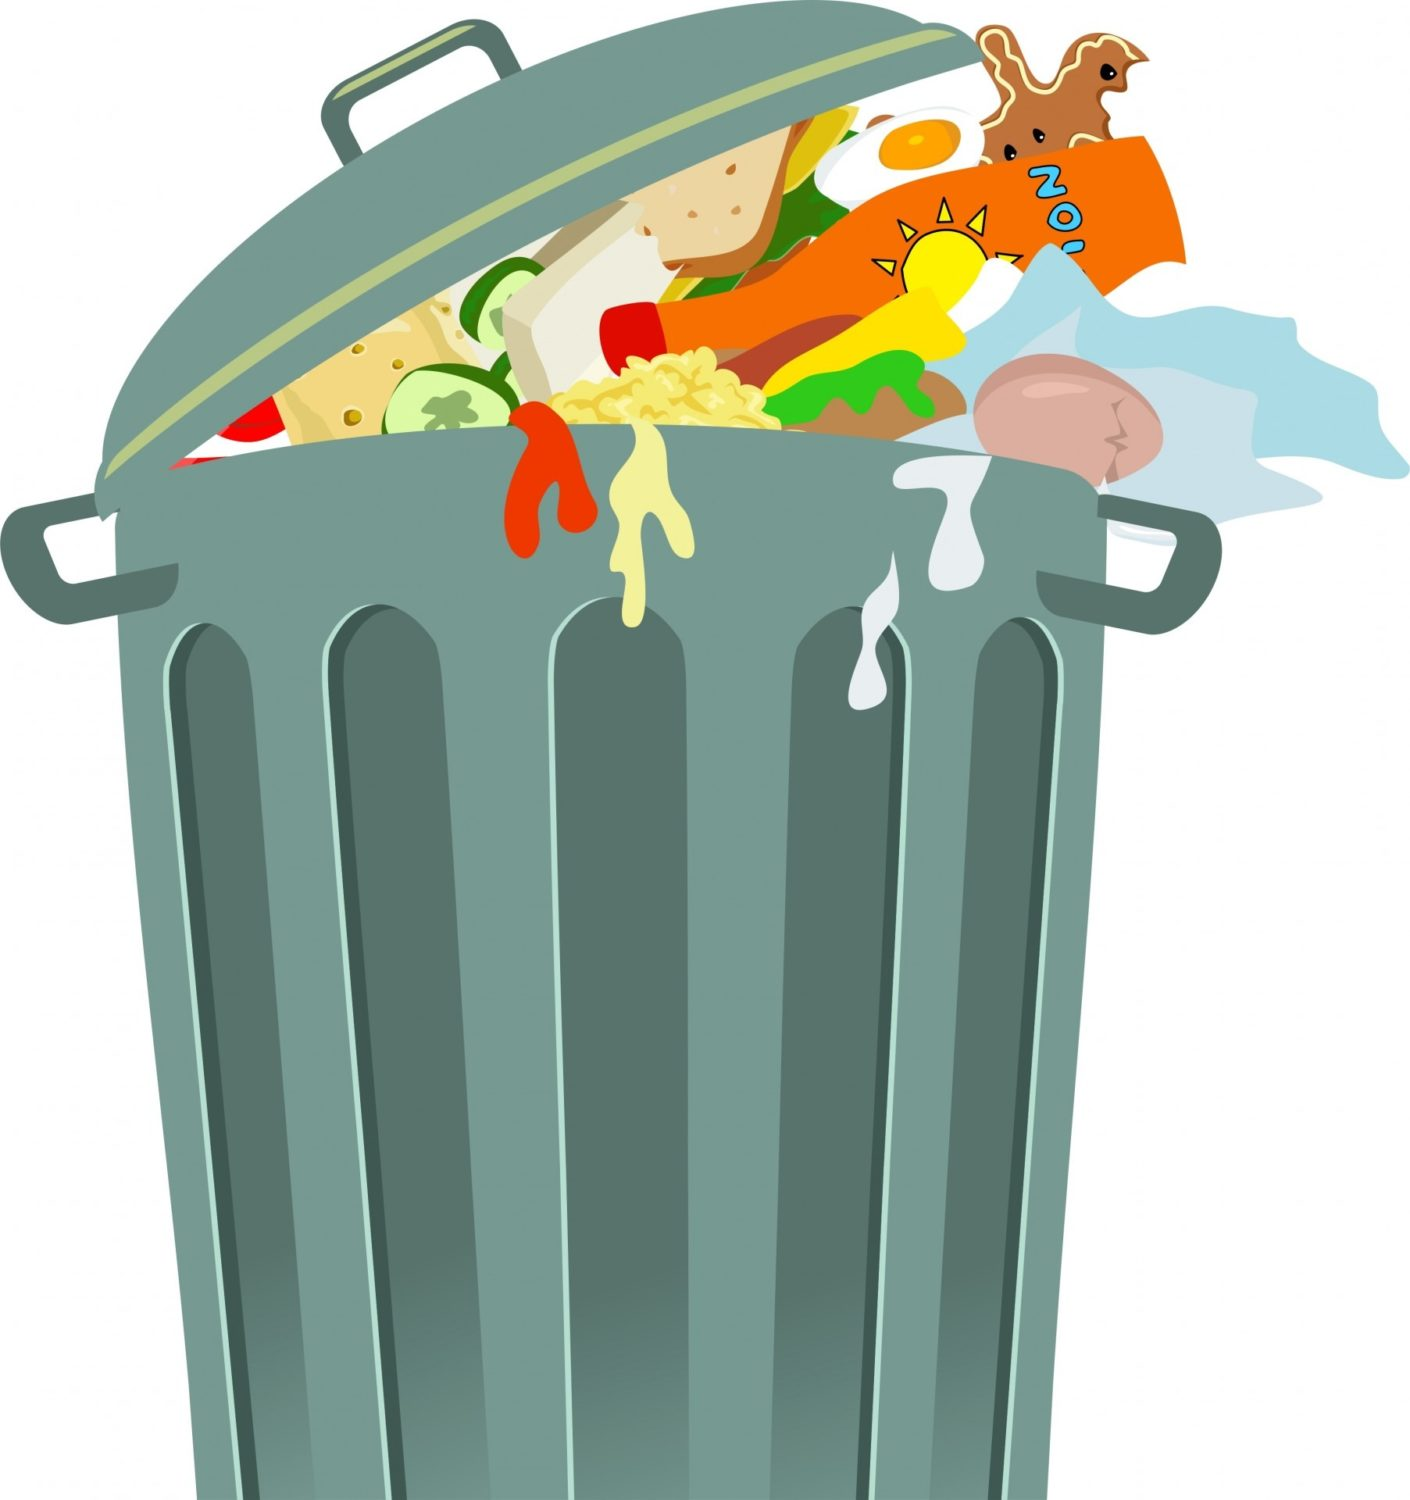 trash can clip art free stock photo public domain pictures within rh healthyjaime com trash clipart png trash clipart black and white